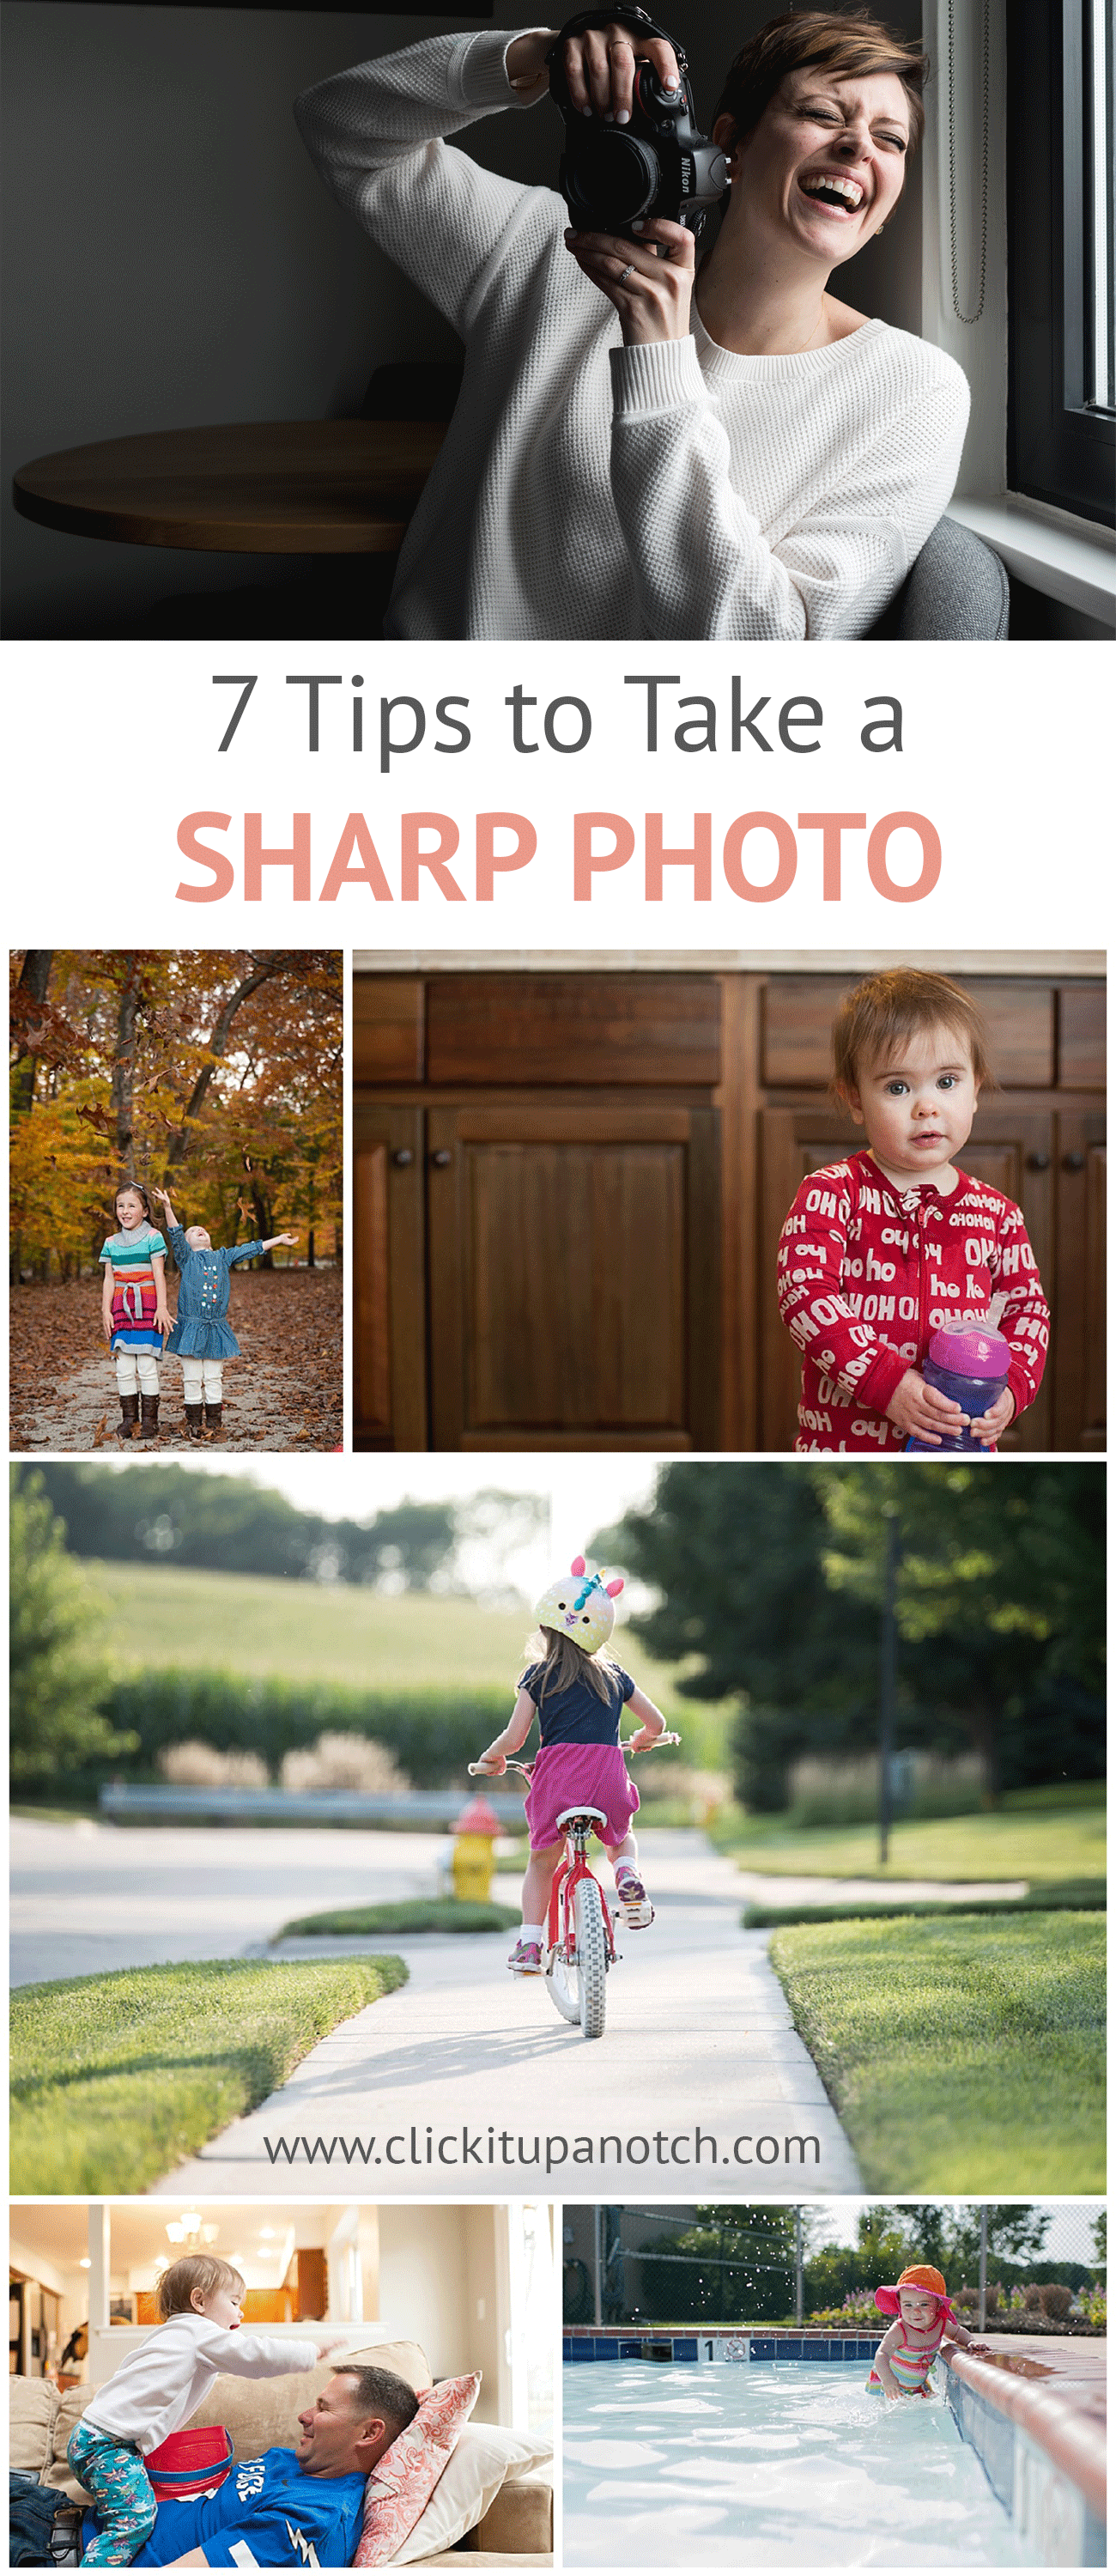 Learn to take sharp photos each and everytime you pick up the camera. Whether you kids is riding a bike or splashing in water you can freeze the moment with your camera. Take tack sharp images today.